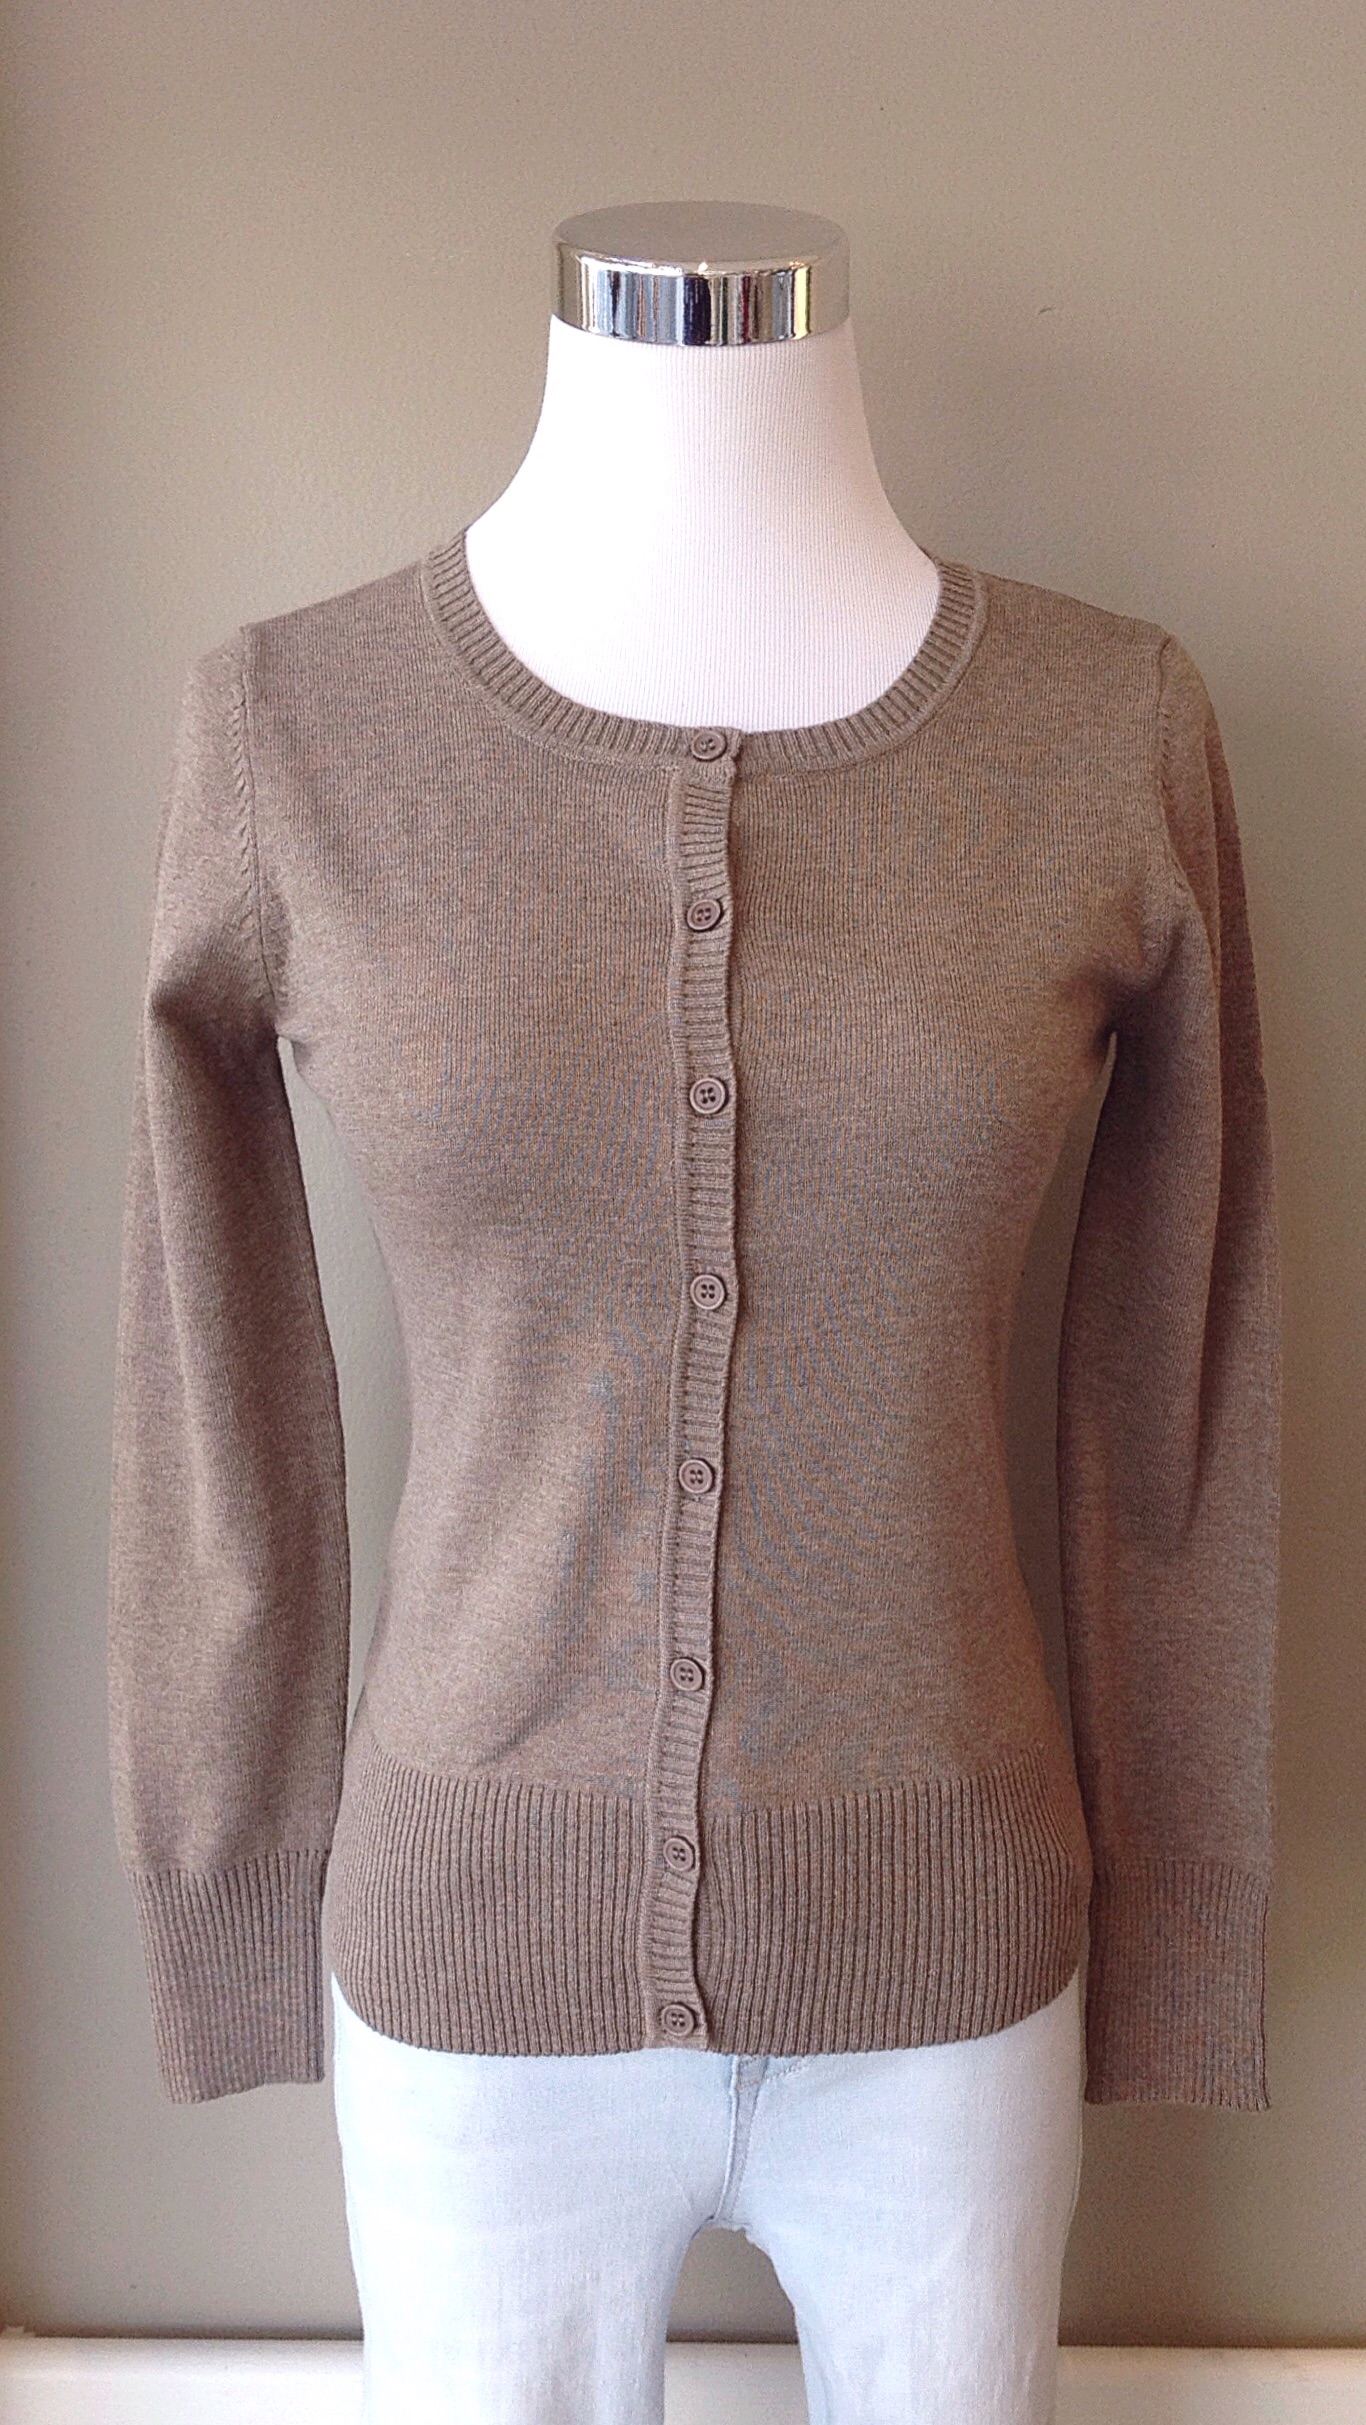 Taupe button-down knit cardigan $28